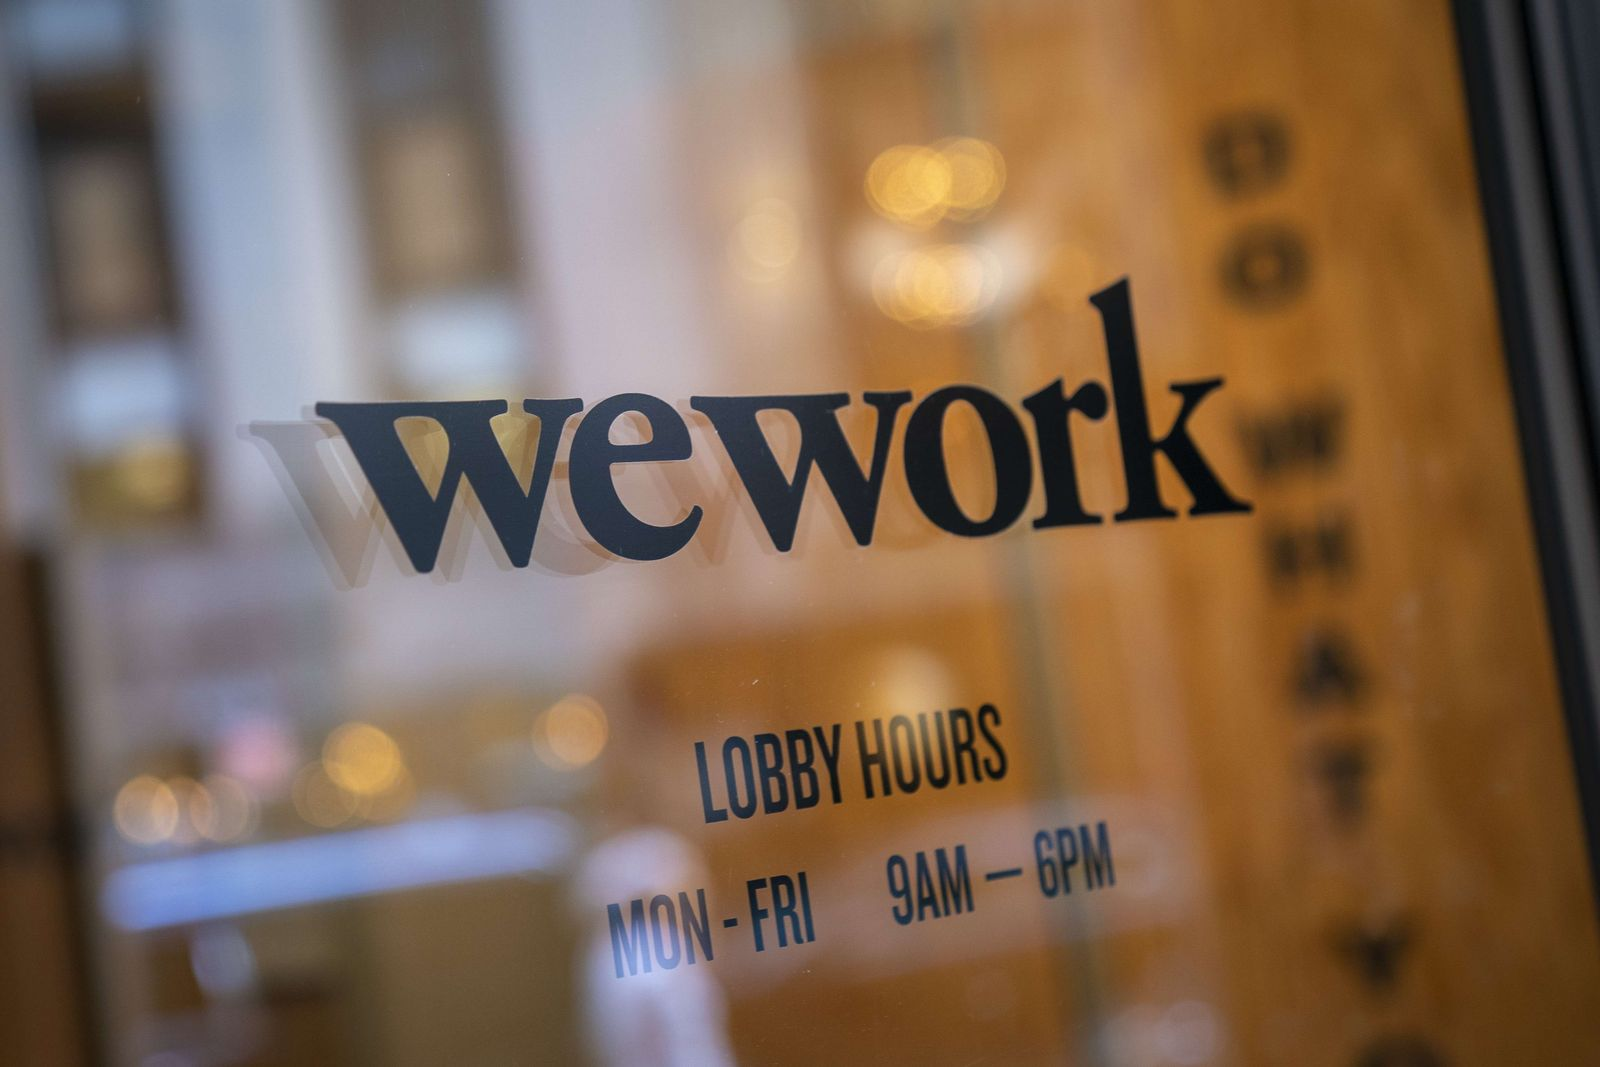 US-WEWORK-TO-ADJUST-CORPORATE-GOVERNANCE,-VALUATION-AHEAD-OF-IPO